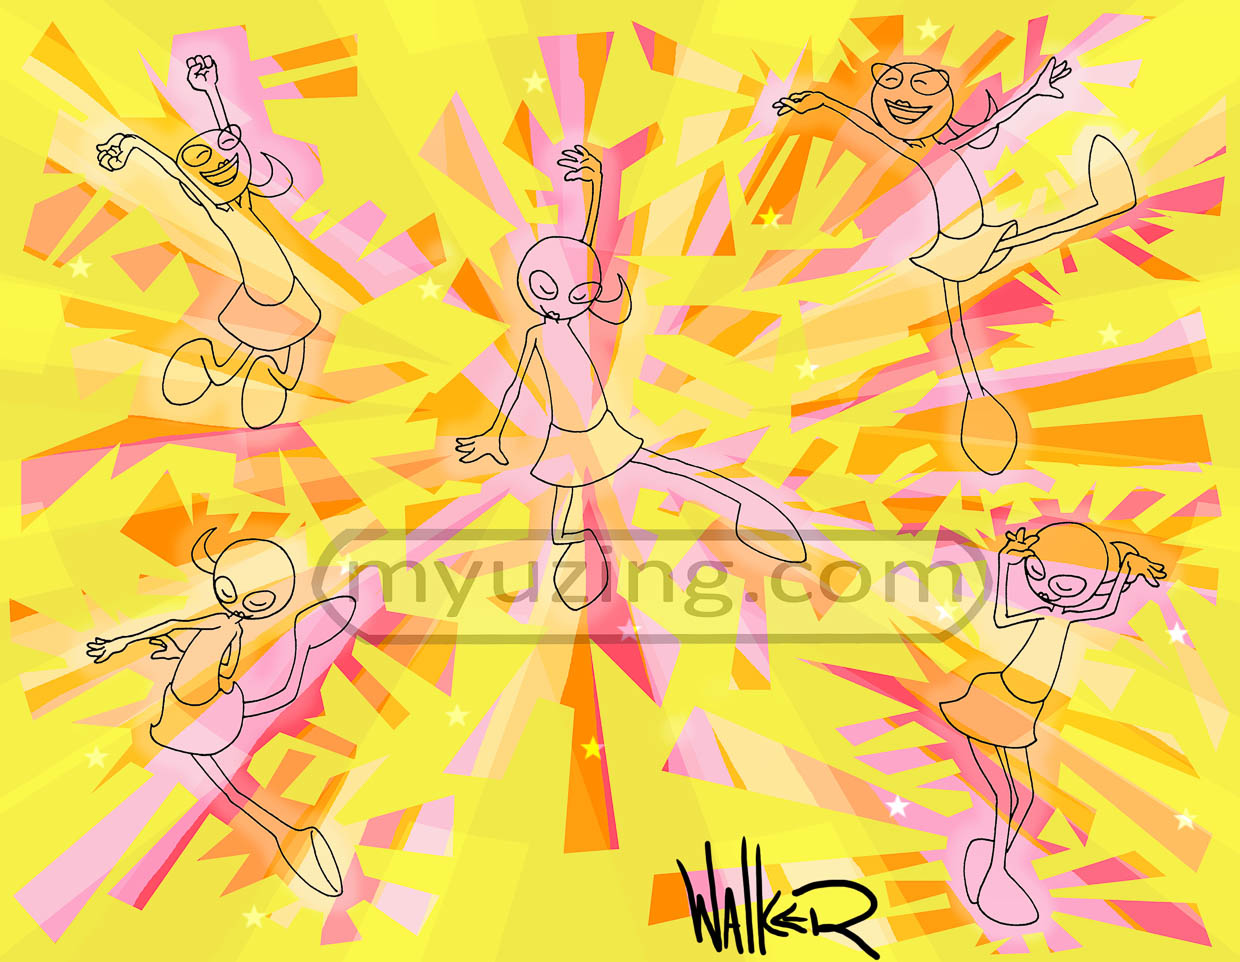 Dance | My Guy by M.L. Walker | Myuzing